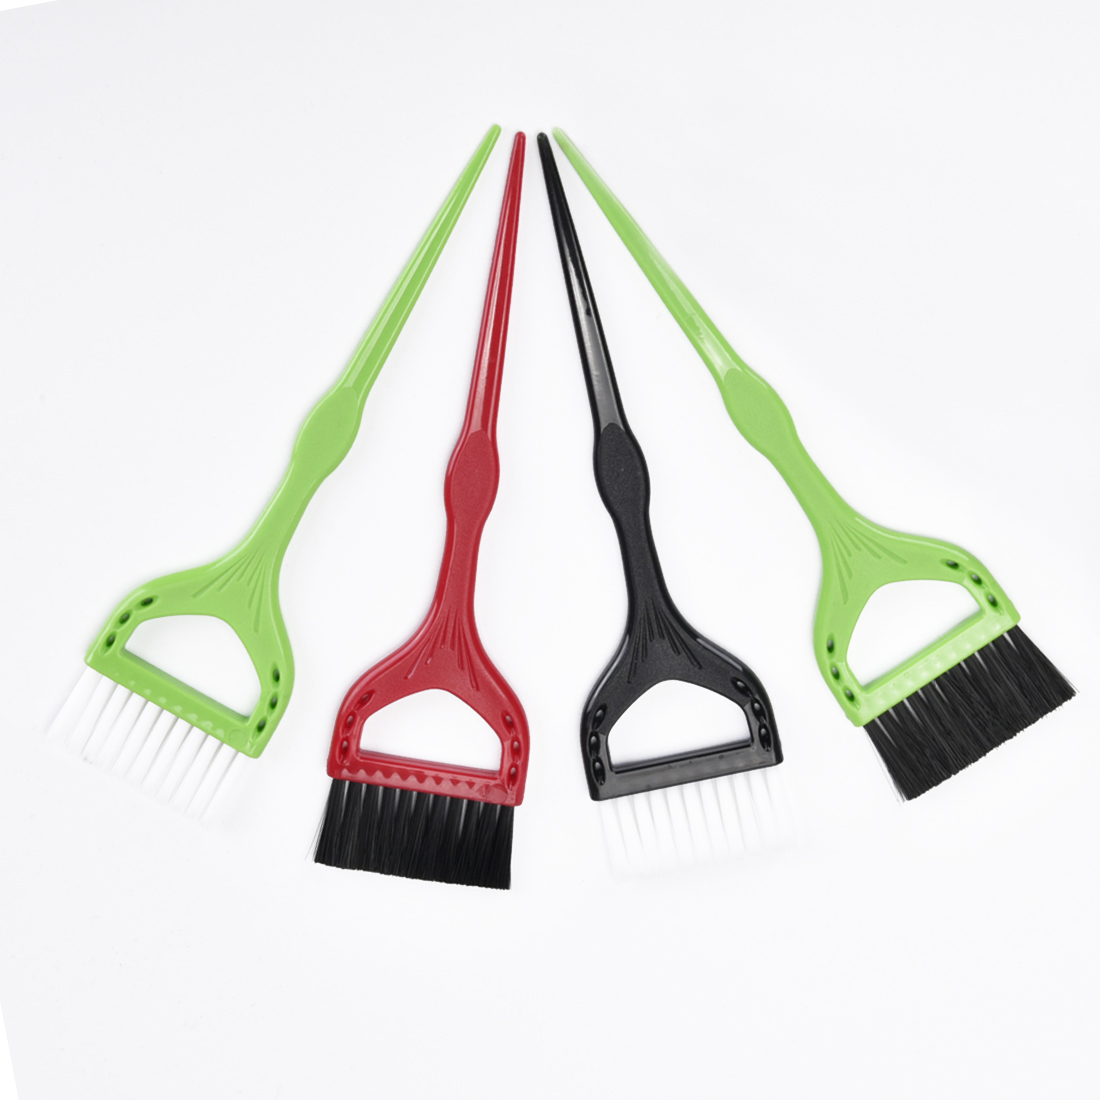 Plastic Hair Brushes Application Hall Hue Perm Lye Dye Coloring DIY Hairdressing Tool Combs Comb Tools Dyeing Hall